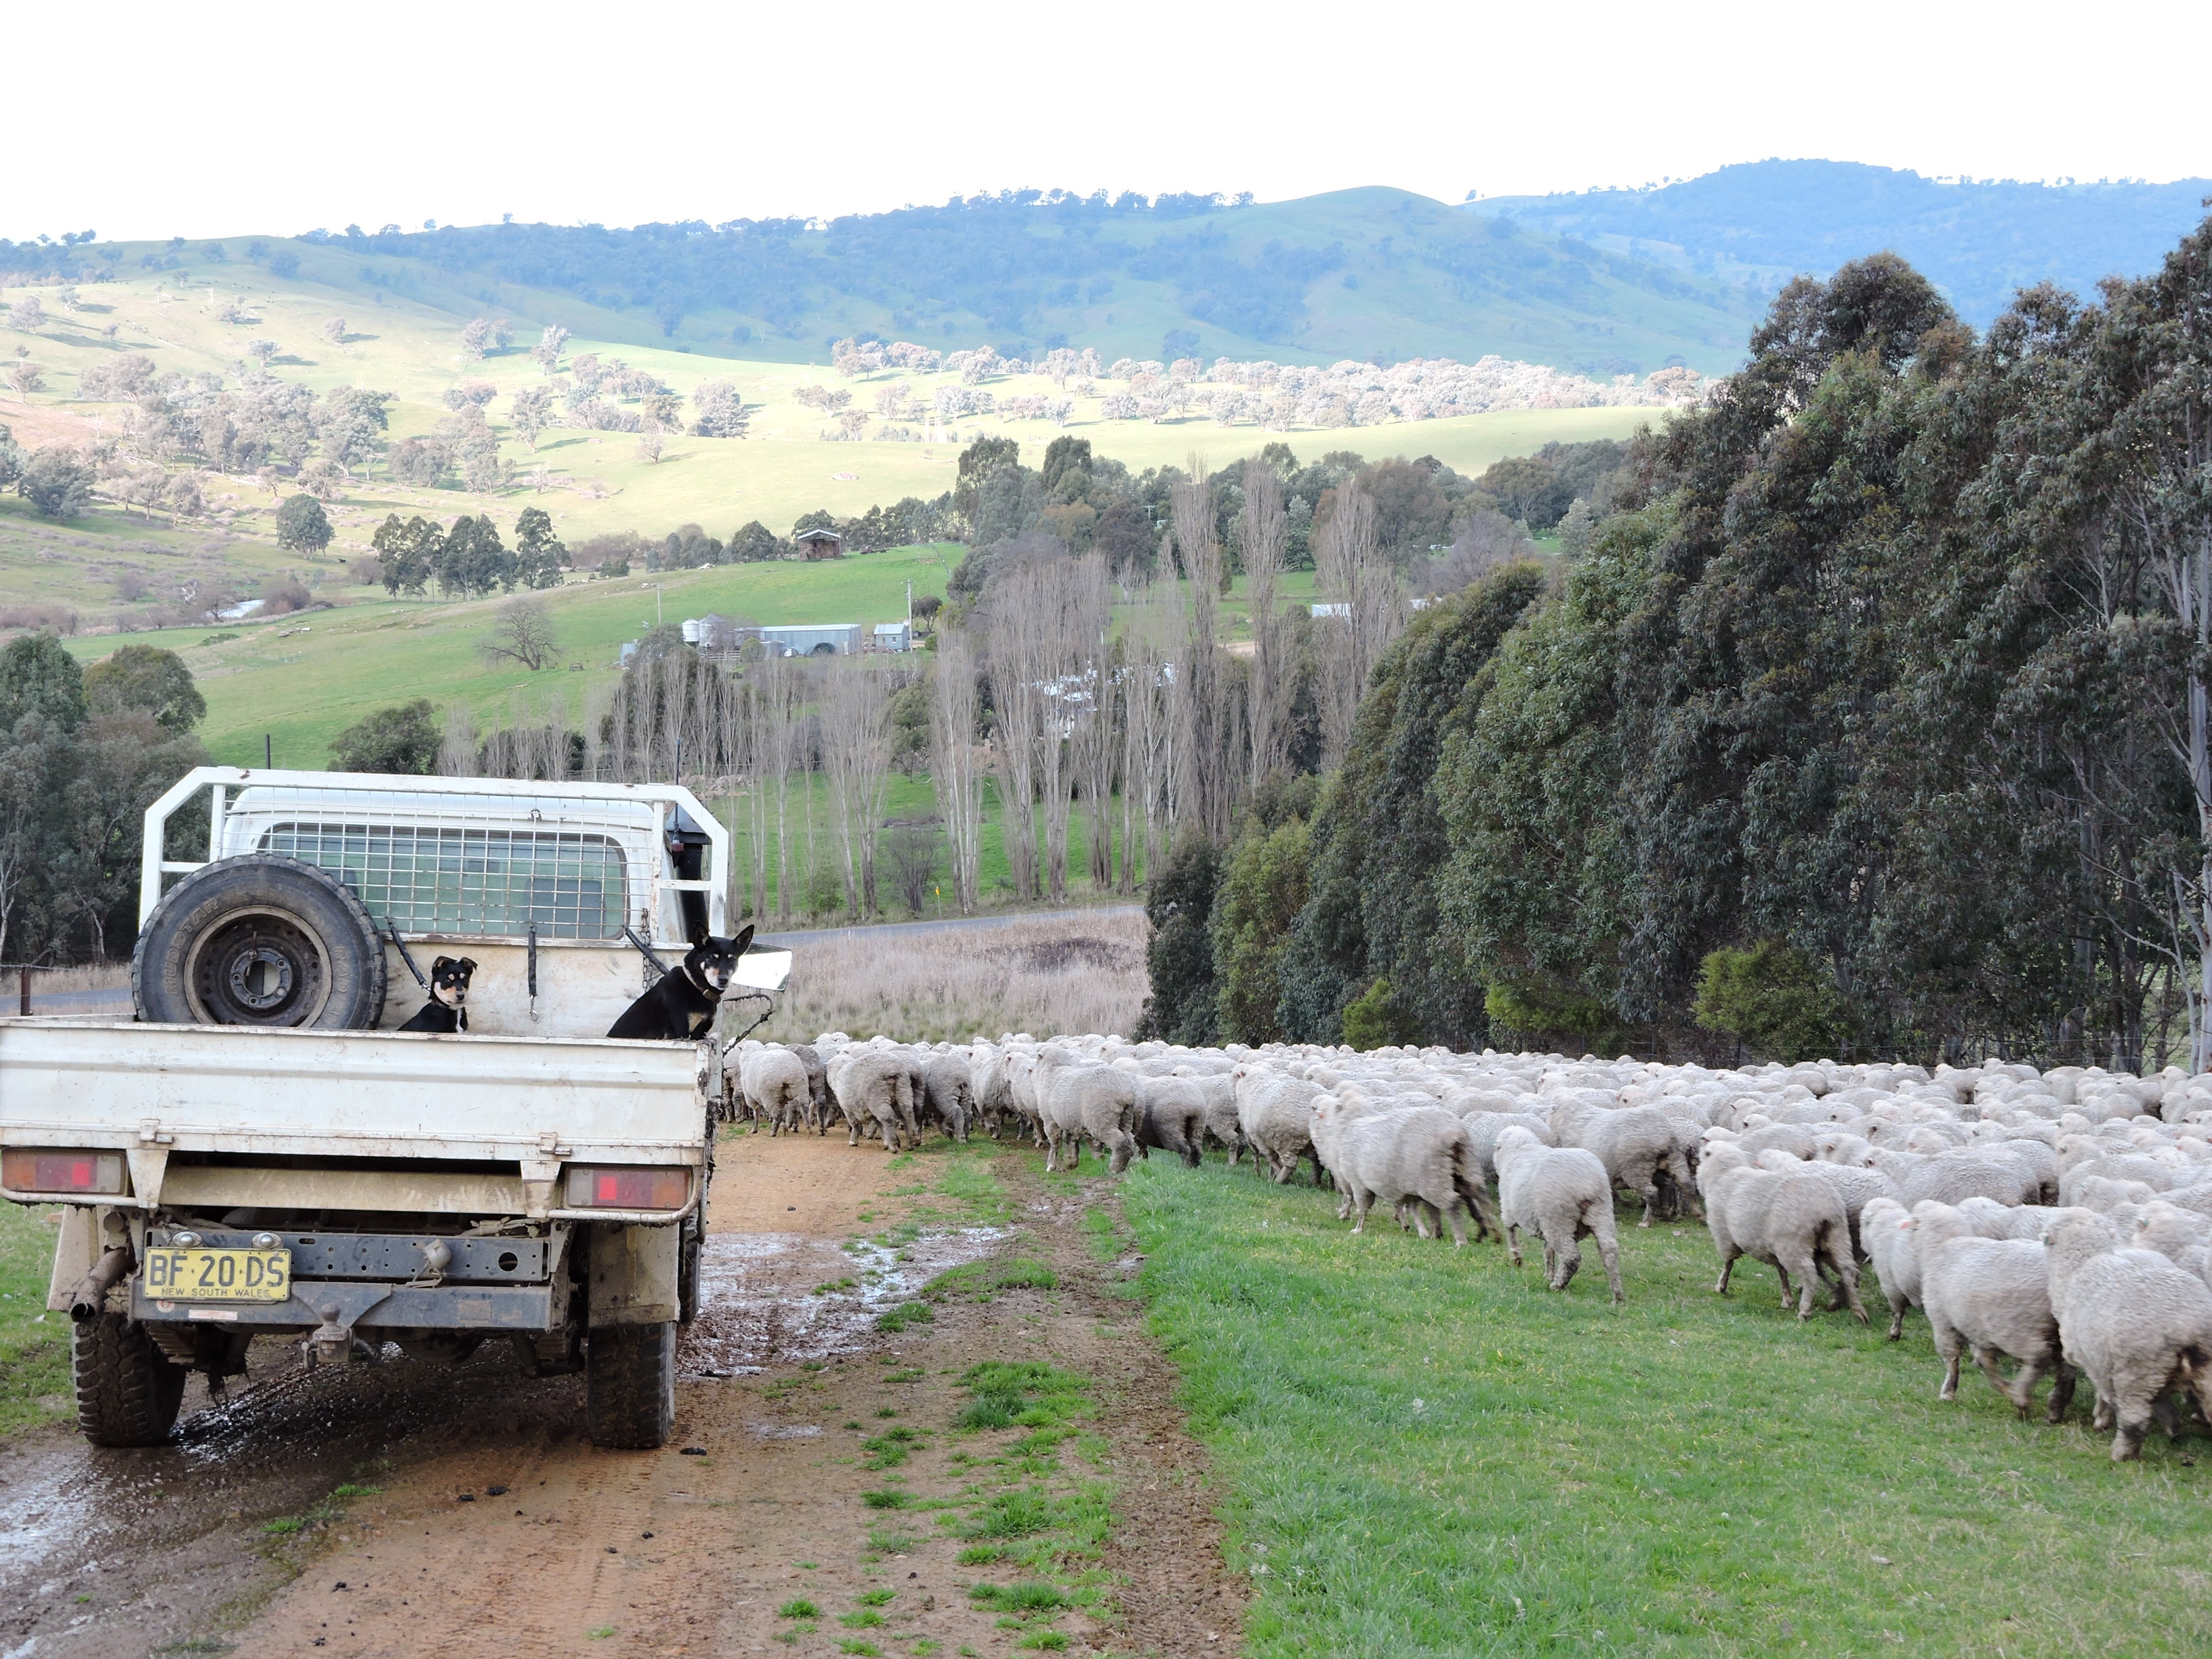 Moving sheep through laneway system